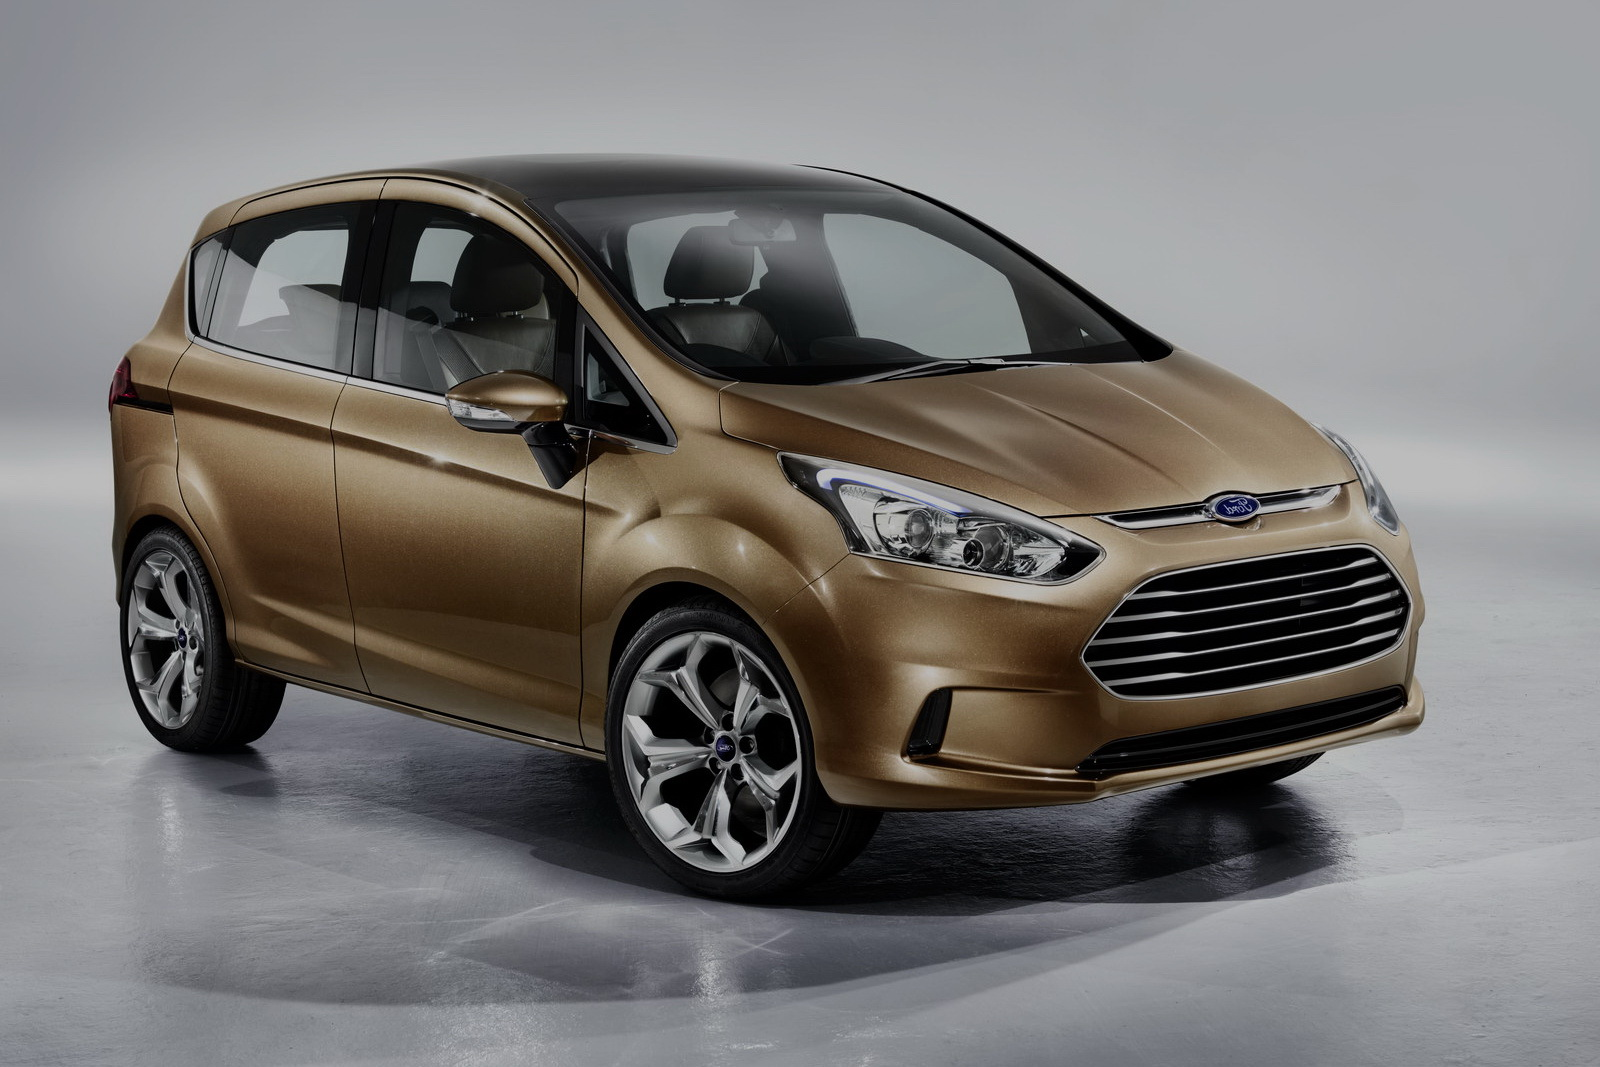 The Ford B-Max at the Geneva Motor Show 2012